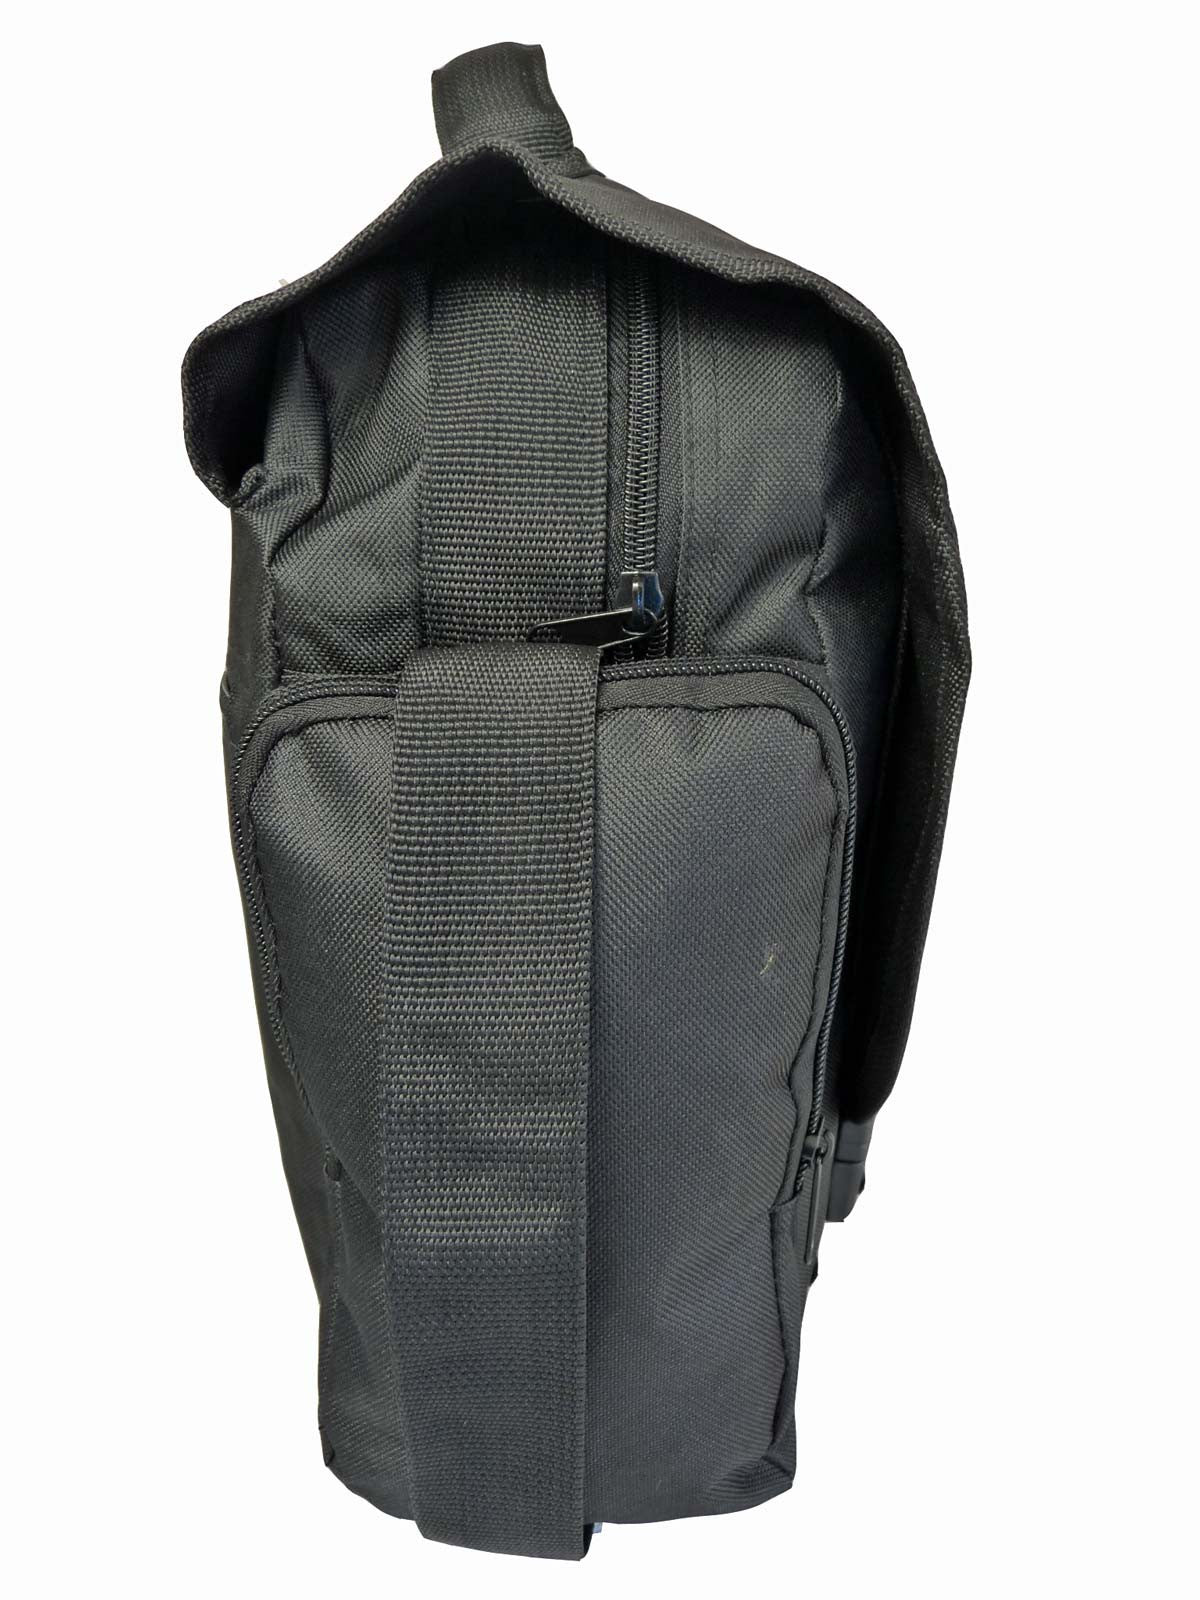 Black Dispatch Messenger Courier Bag Bags R39 end view